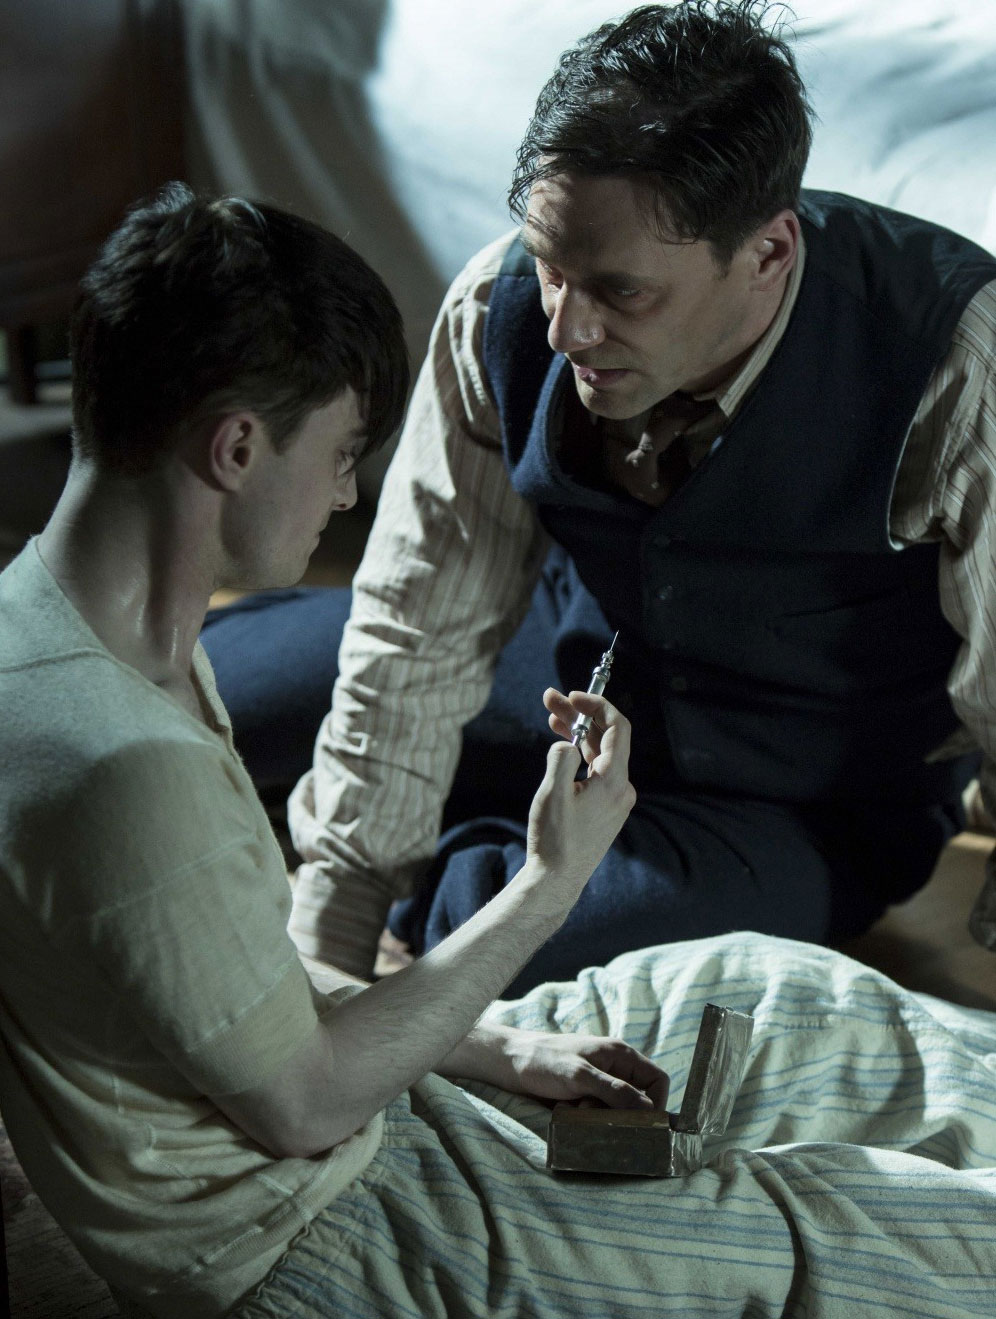 A screenshot from the British series Yound Doctor's Notes starring Daniel Radcliffe. Source: kinopoisk.ru